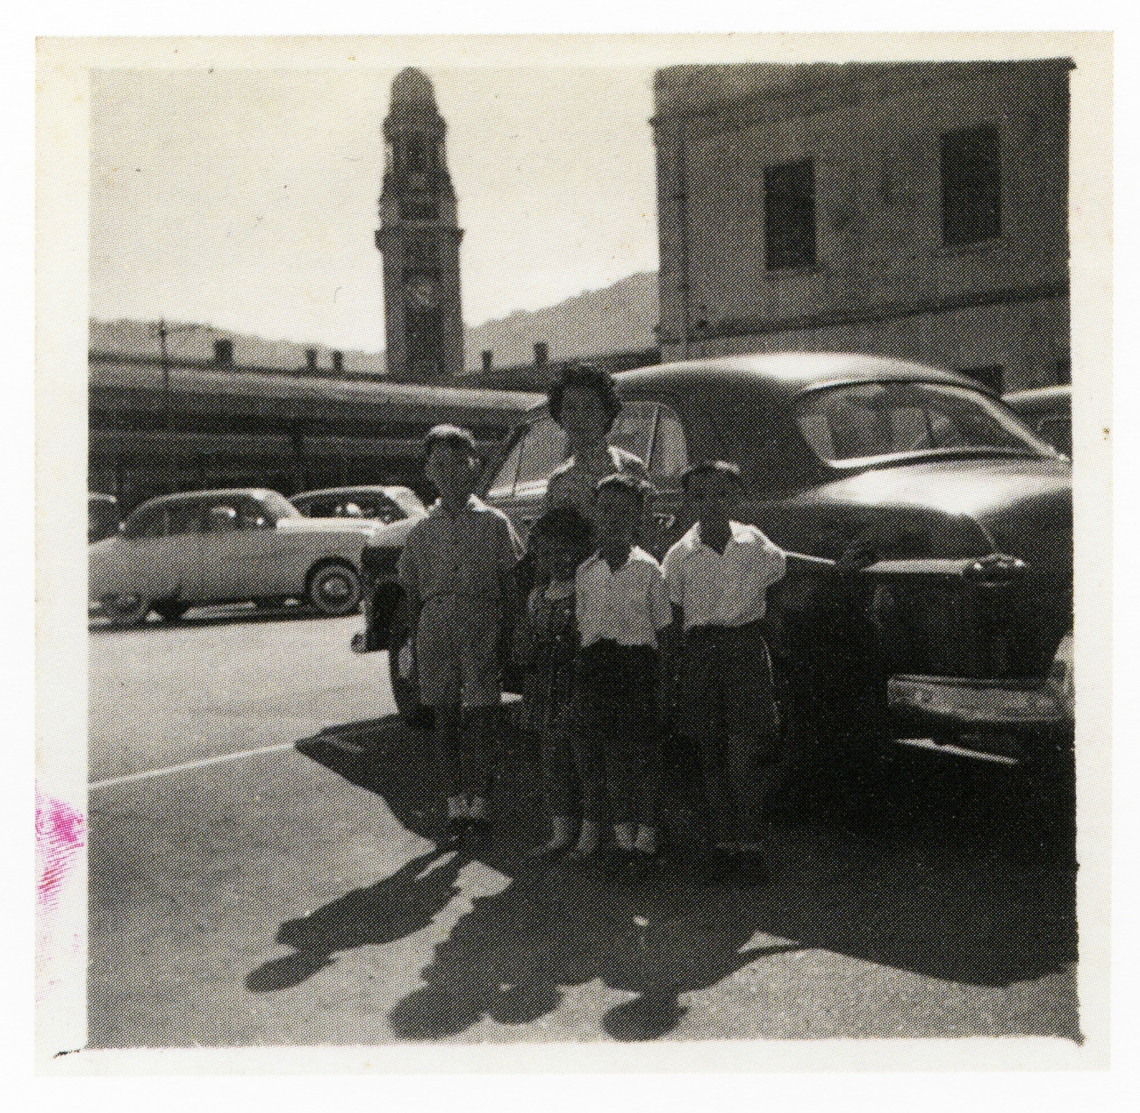 (Eng) Newly arrived in Hong Kong. Posing next to a stranger's car, 1956